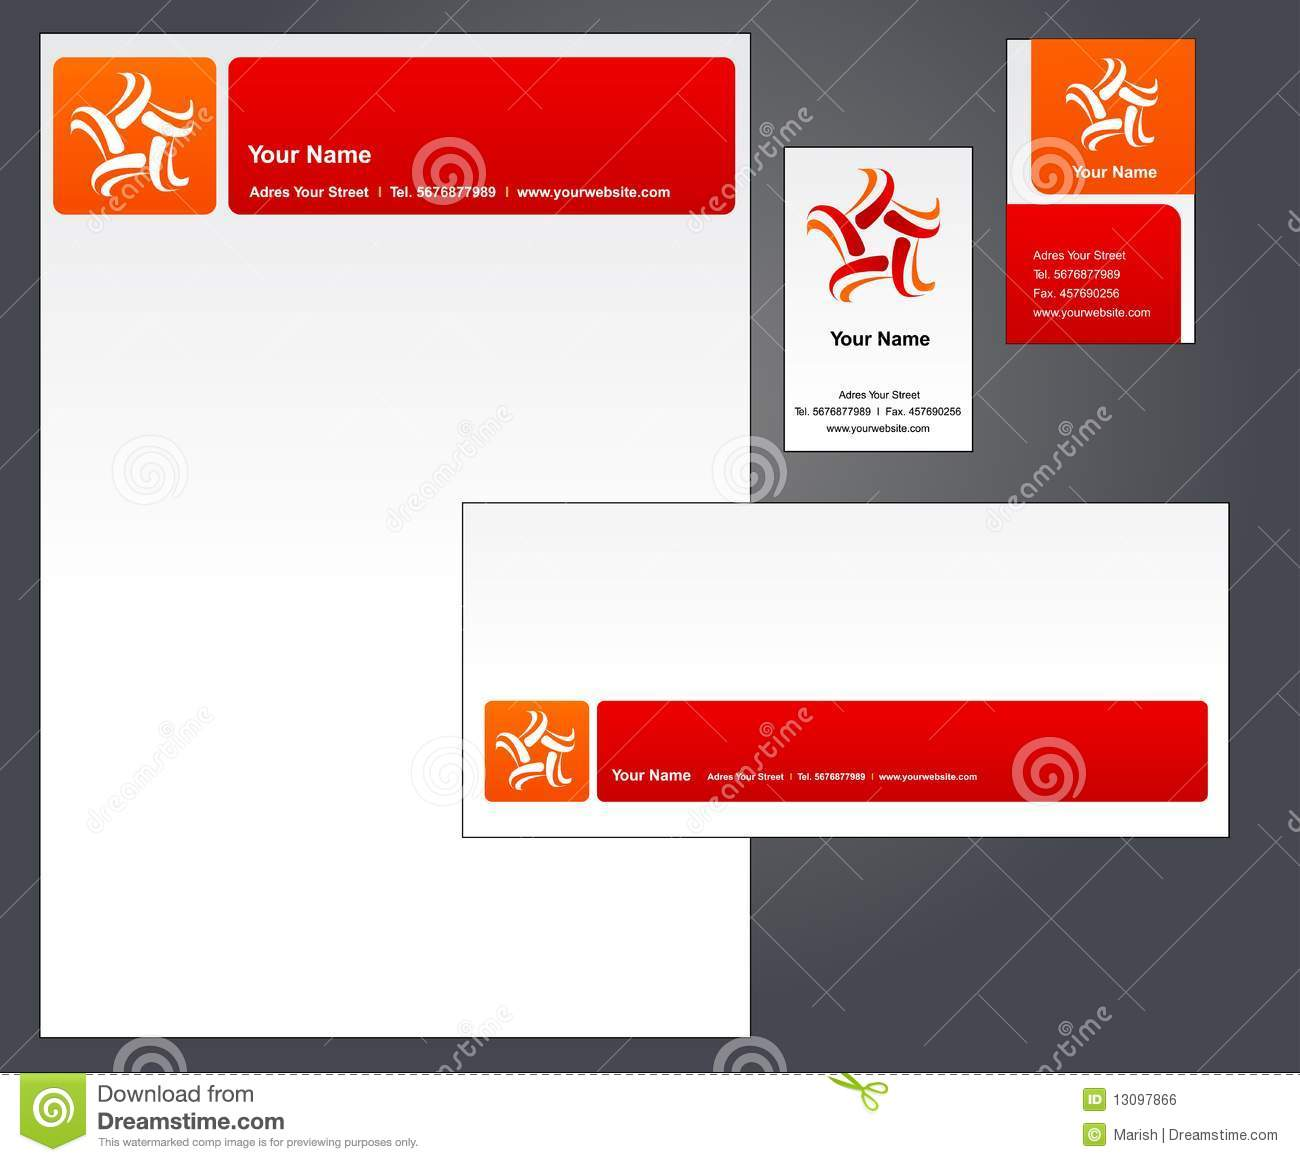 Corporate Letterhead Template At Rs 2 Piece: Corporate Letterhead Template #2